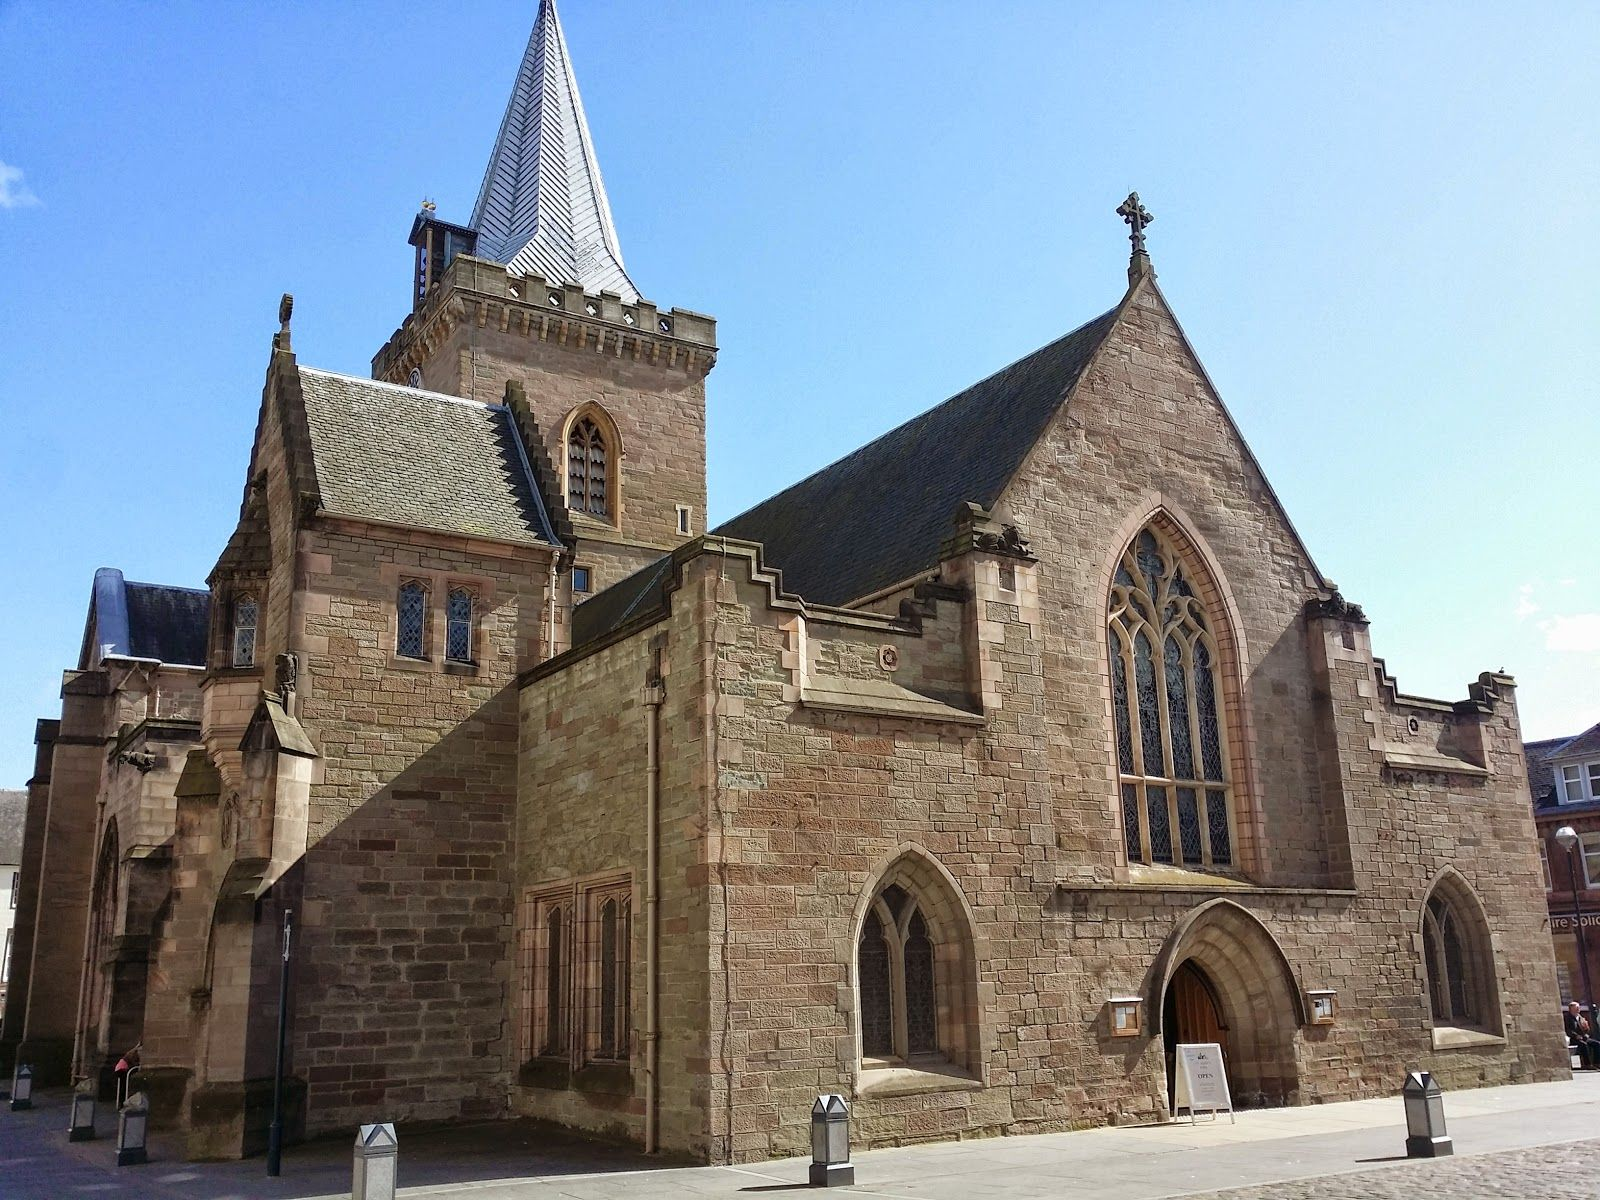 St Johns Kirk the Oldest Building in Perth | Schotland